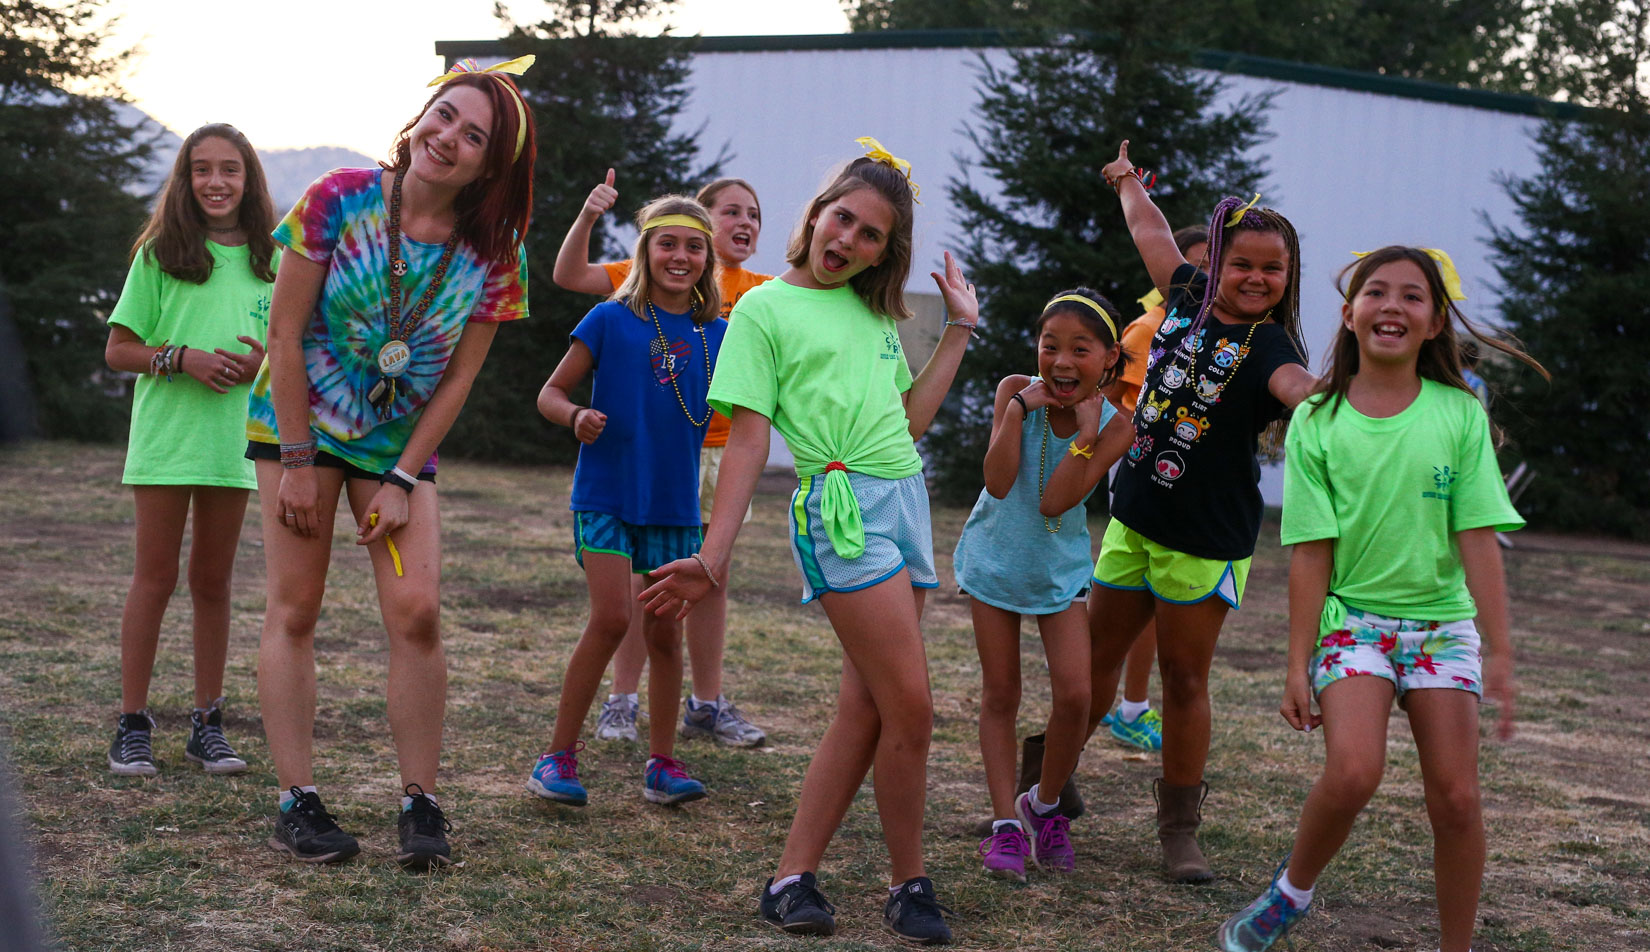 Campers posing for the camera